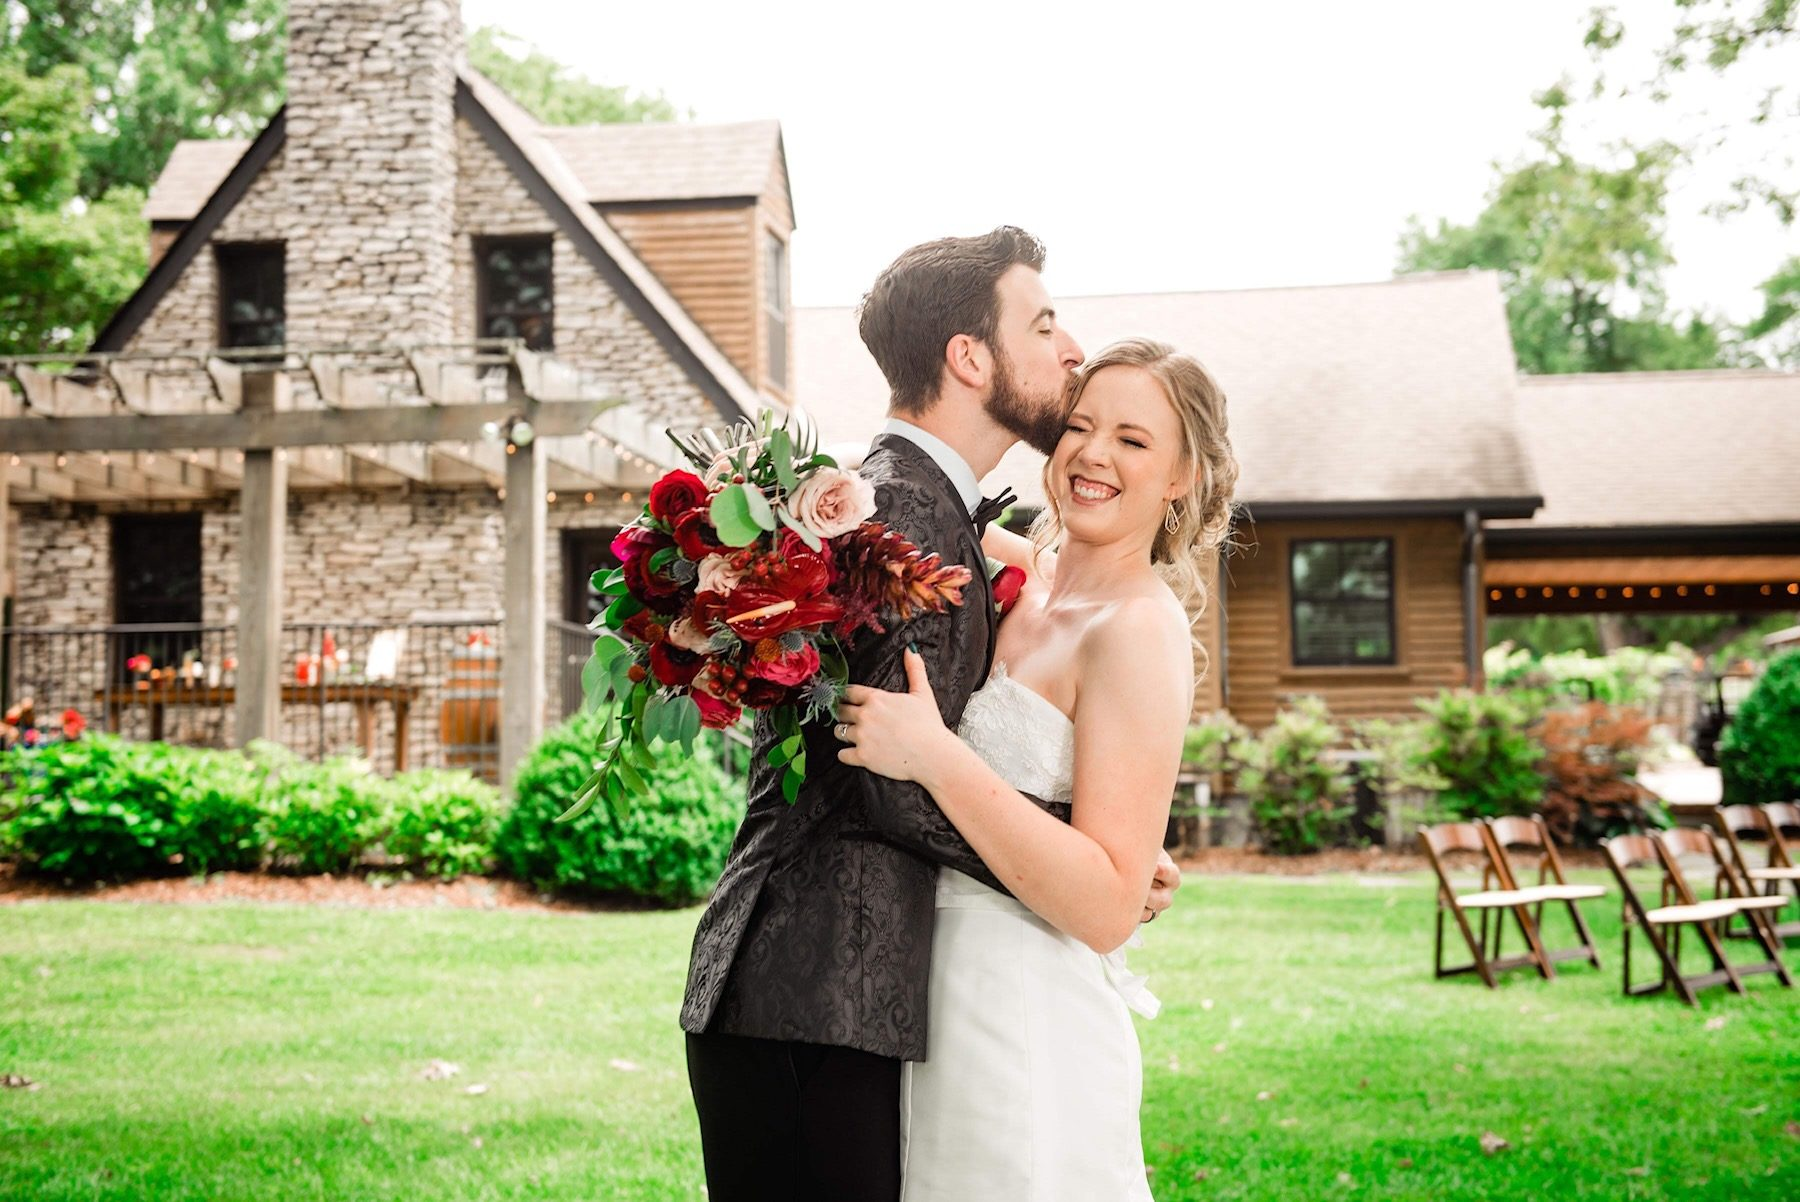 Amy & I Floral Designs Styled Shoot